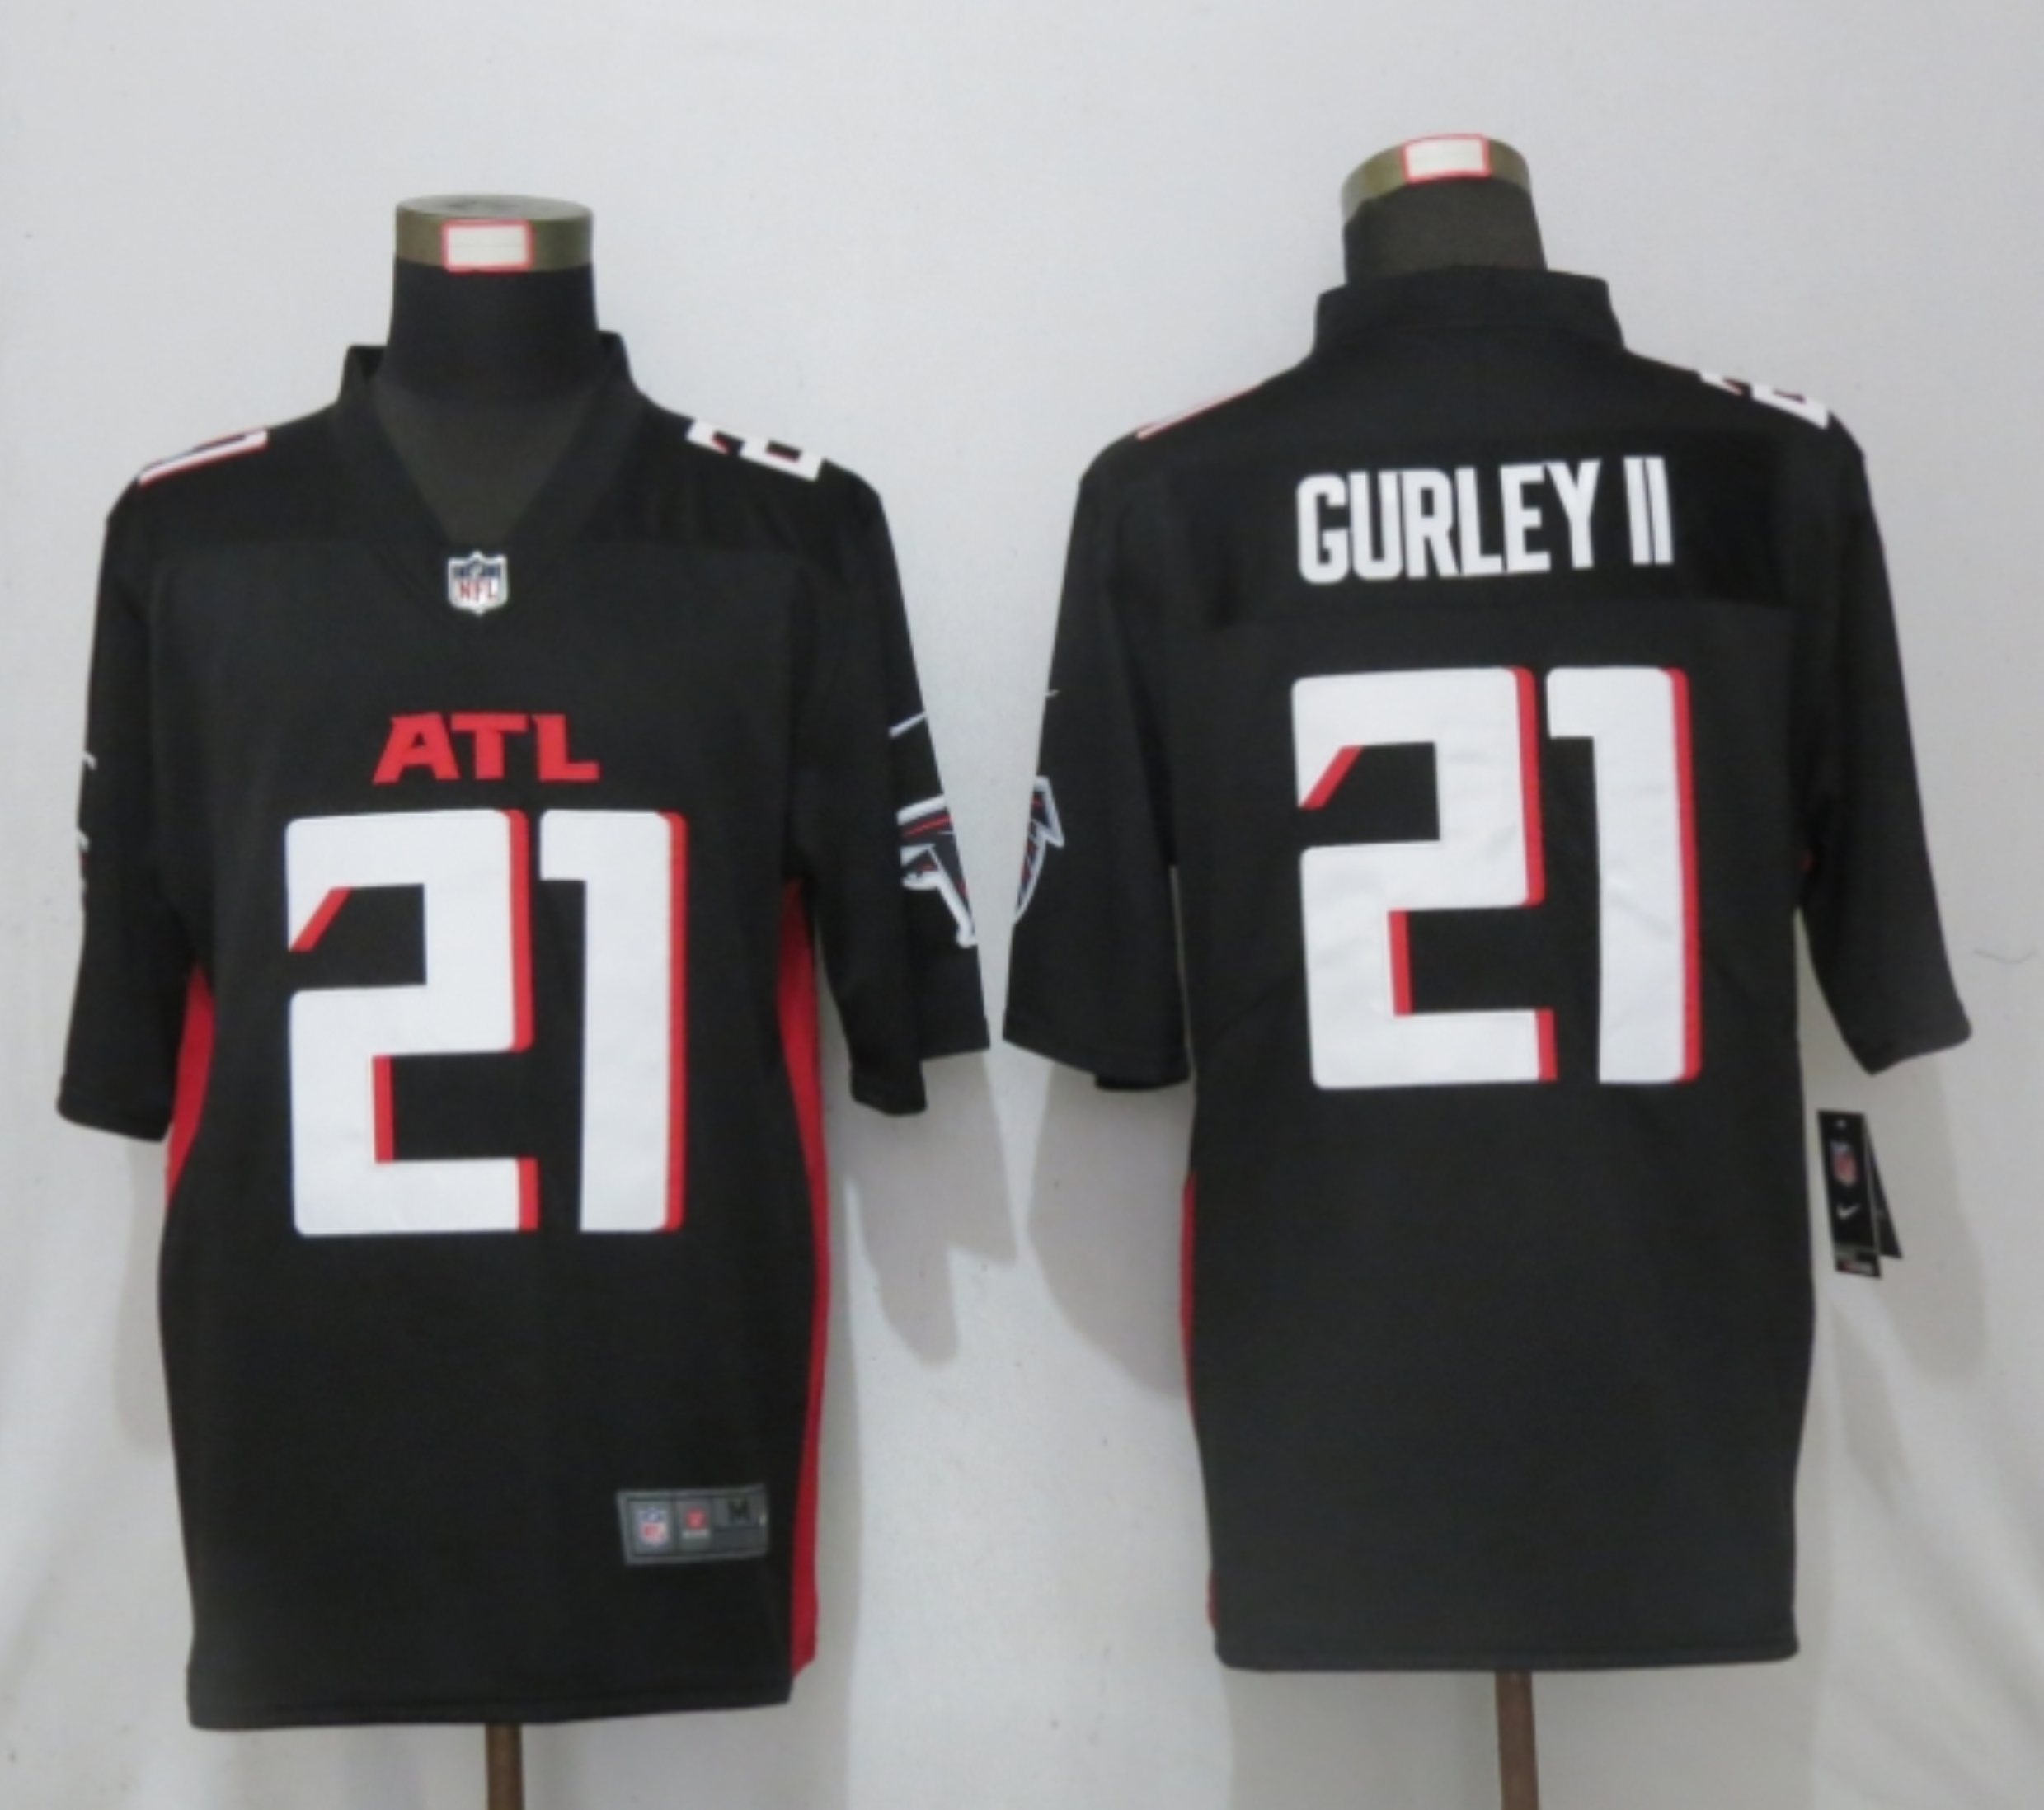 Men New Nike Atlanta Falcons 21 Gurley II Black Game Jersey